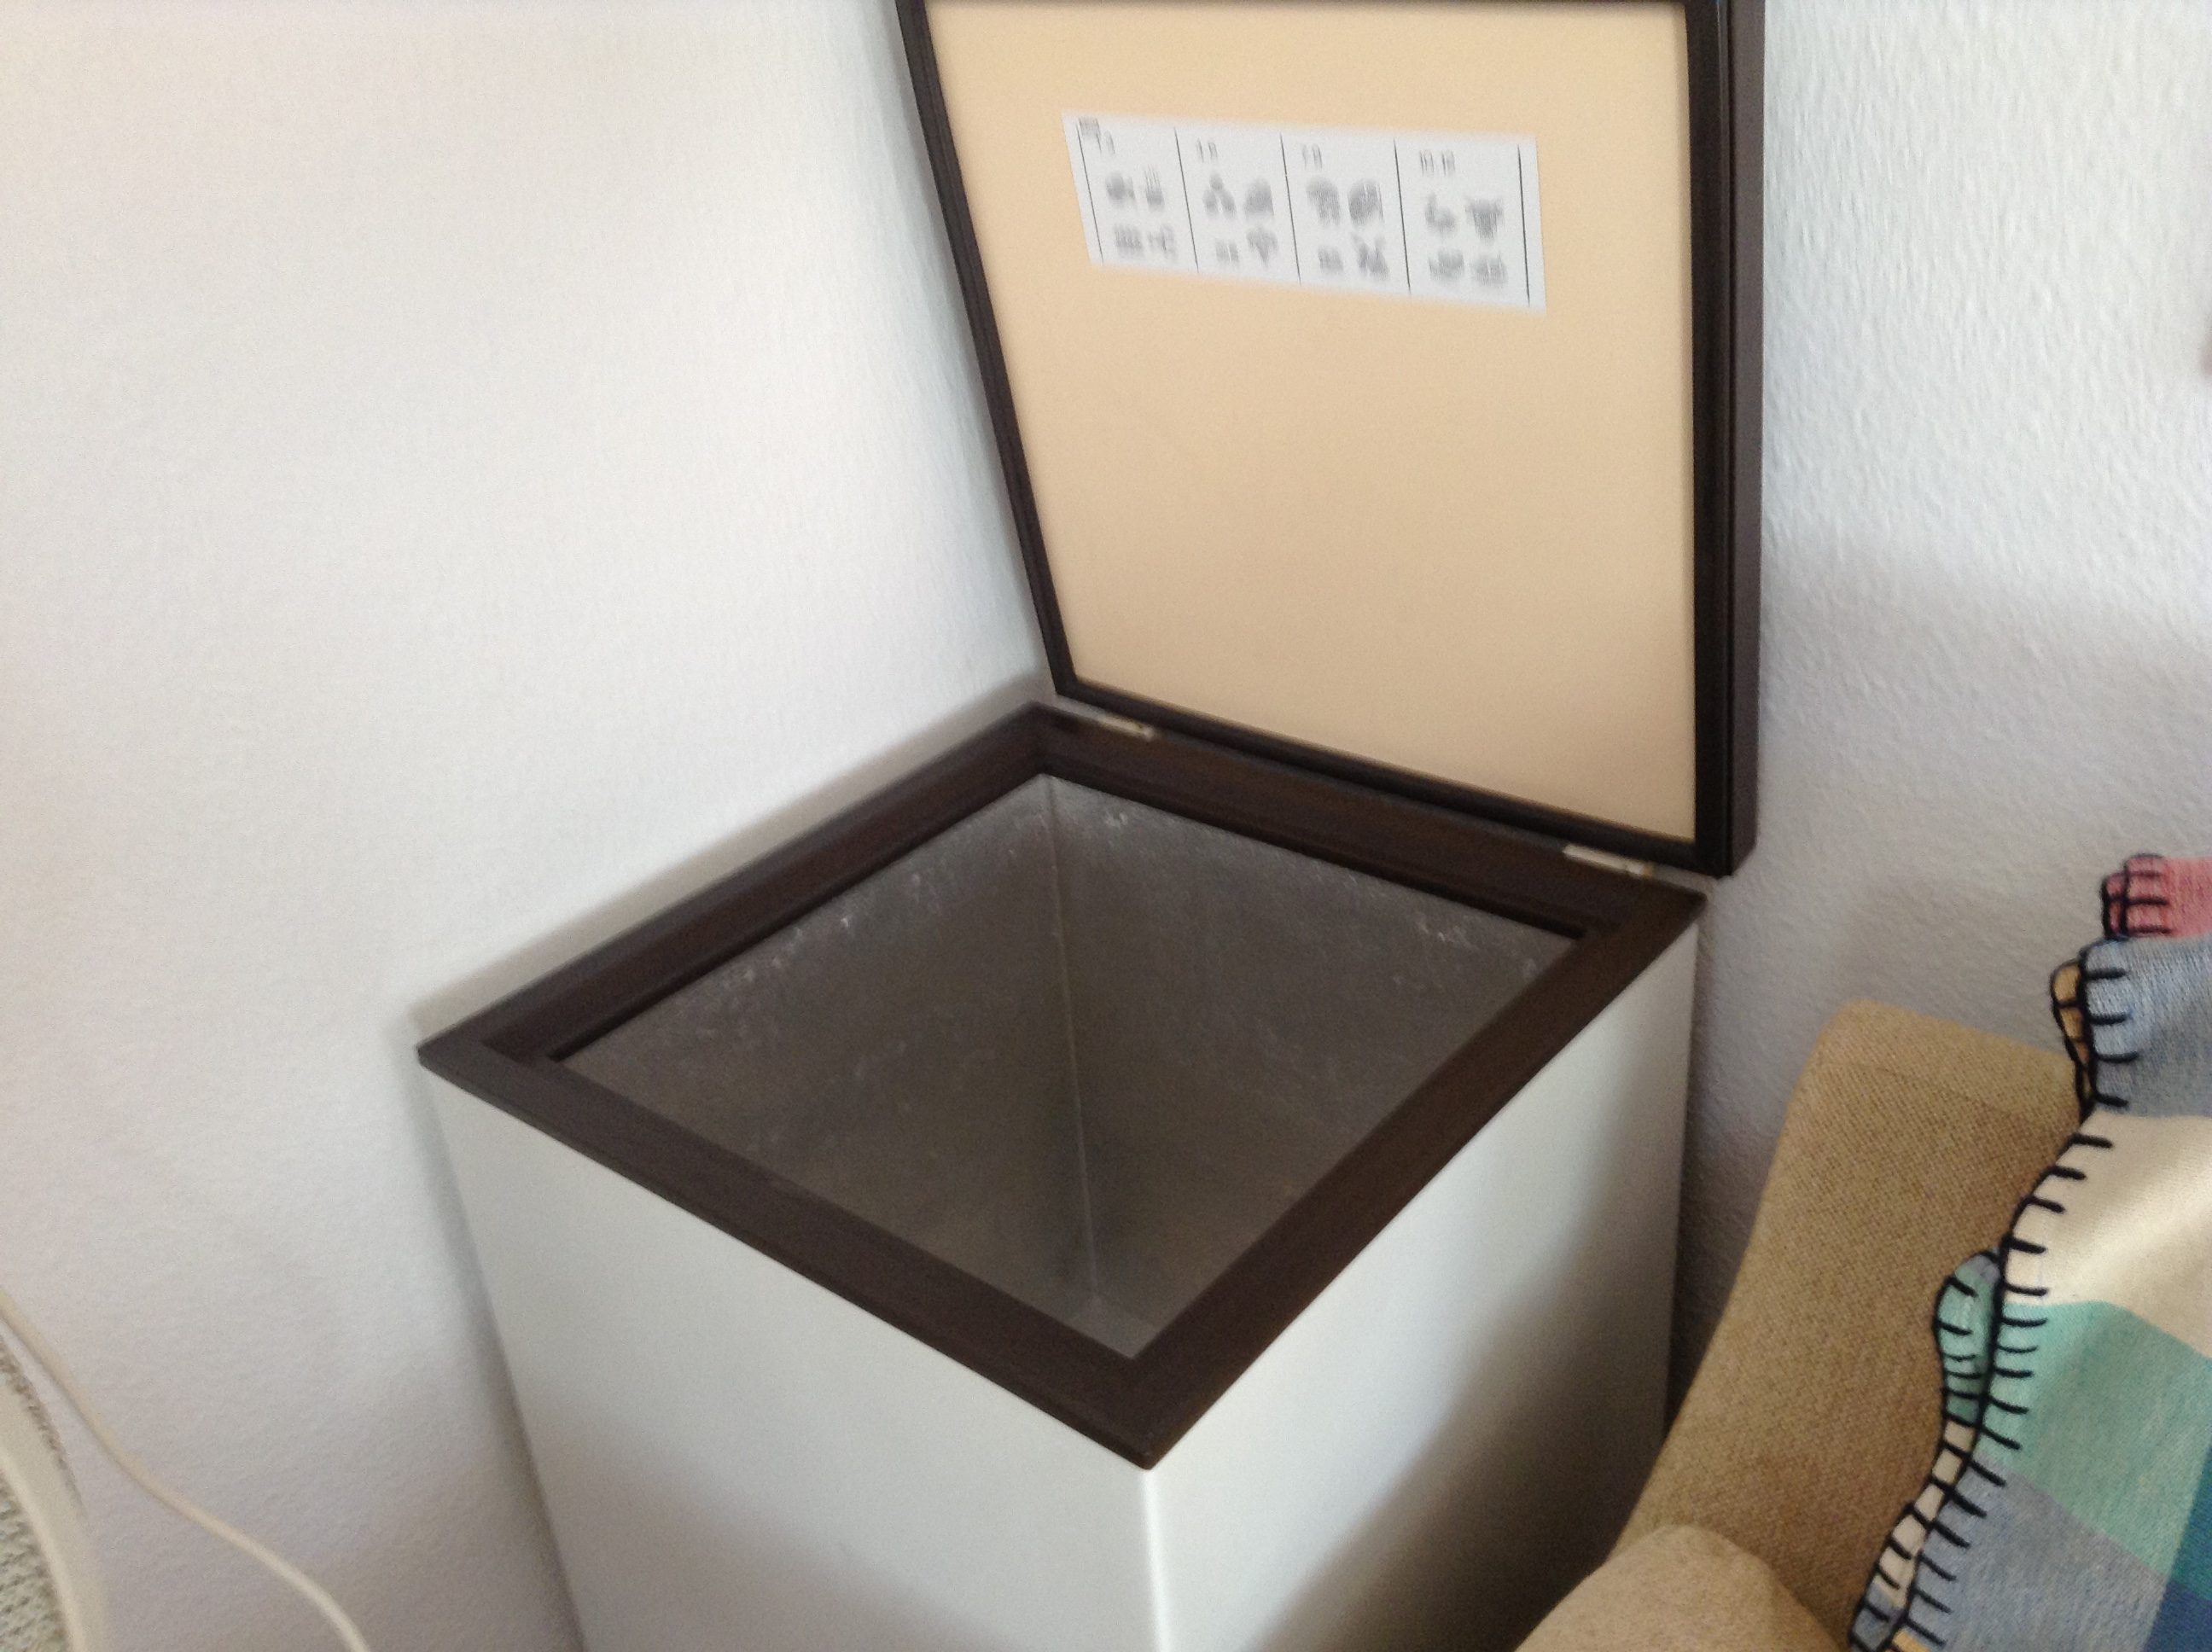 For Sale Small Chest Freezer Buy And Sell Items In